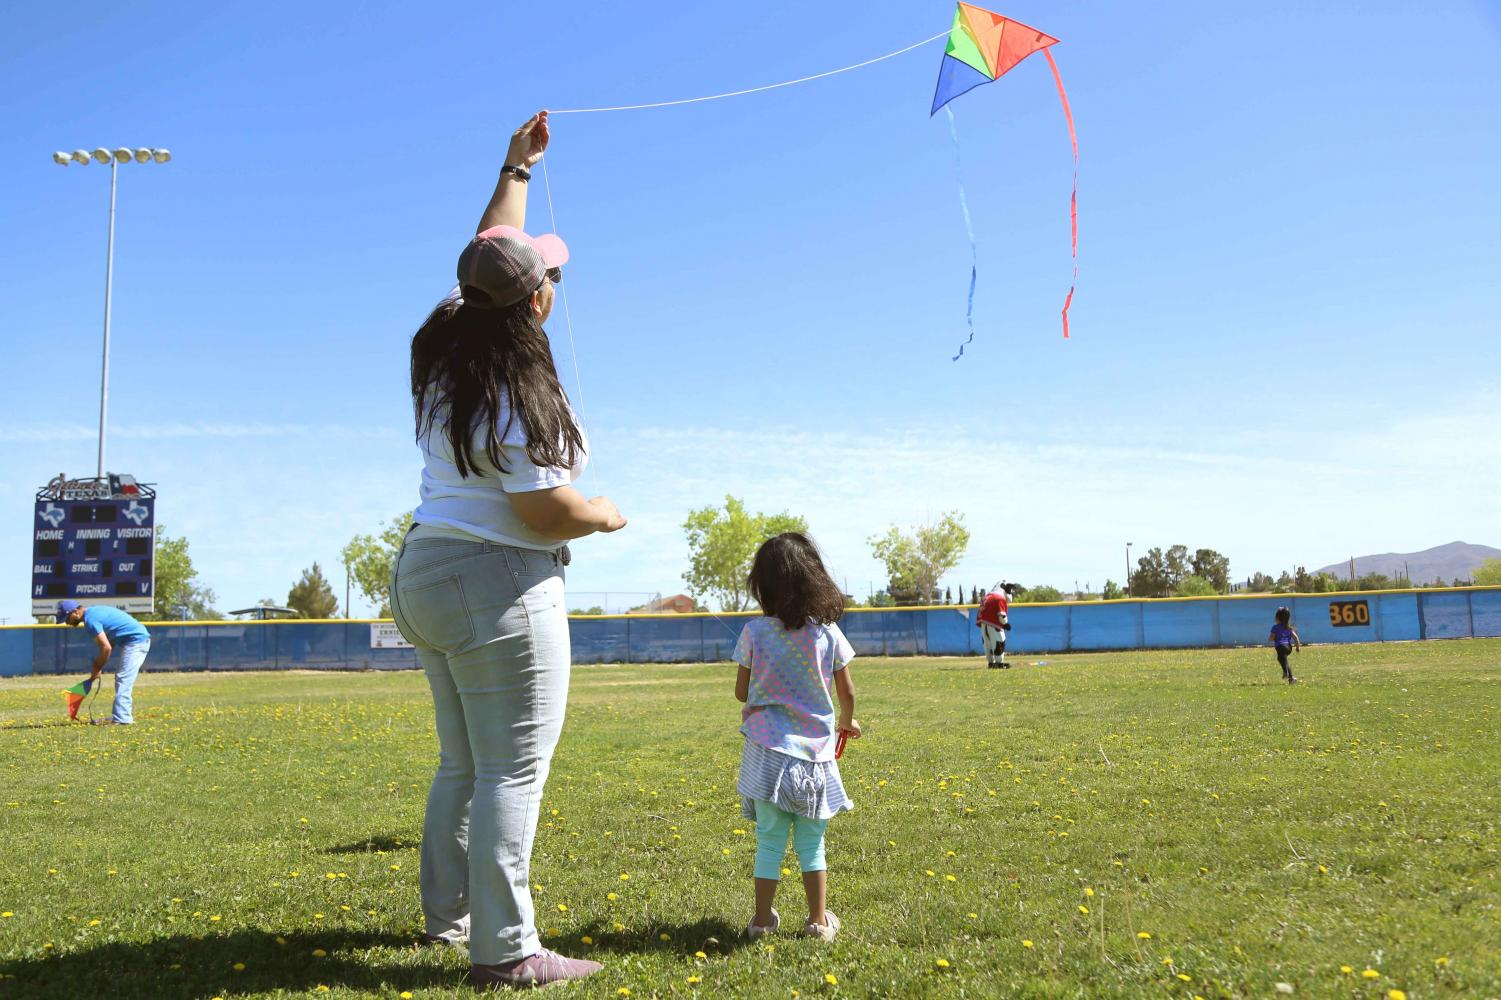 Voices United Executive Director Ambar M. Gutierrez flies a kite with her daughter at the first annual Kite Festival on Saturday, May 19, at Ernie Rascon Memorial Park.